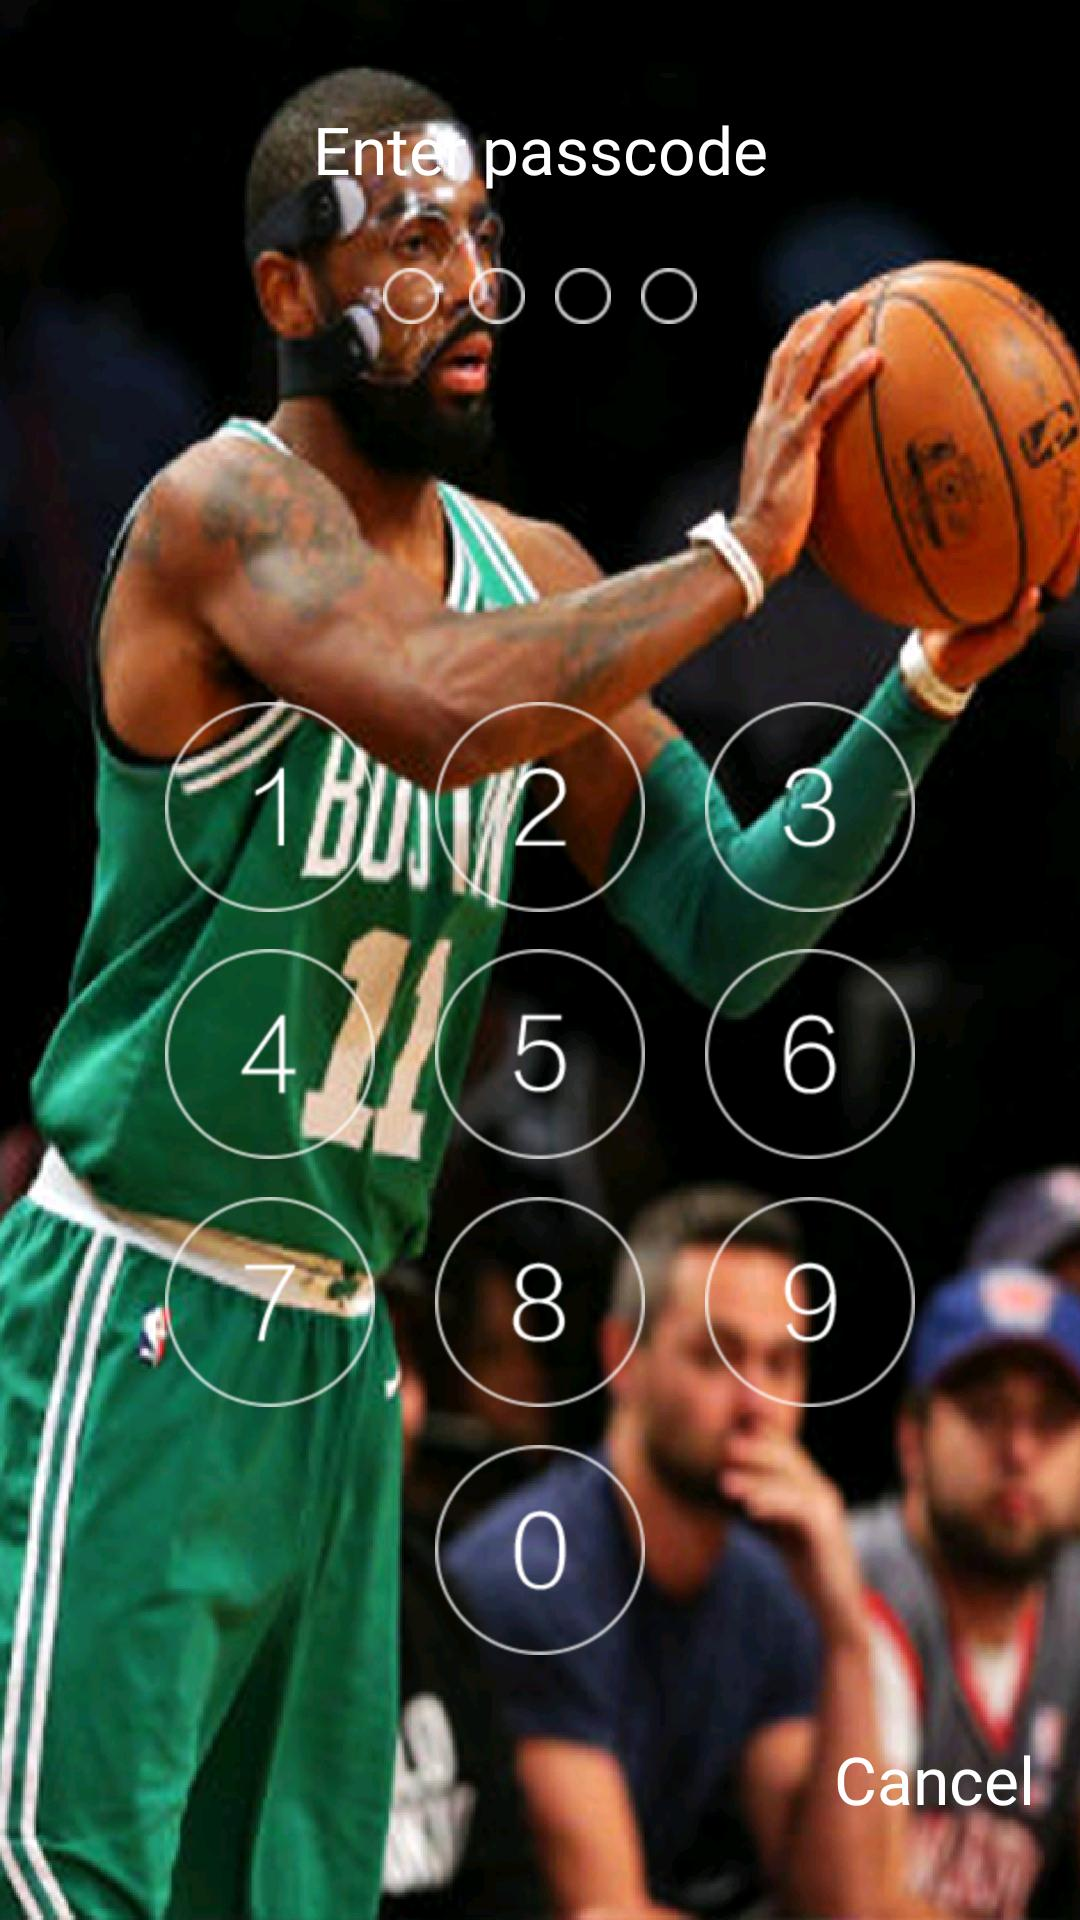 Kyrie Irving Lock Screen Hd Wallpapers For Android Apk Download